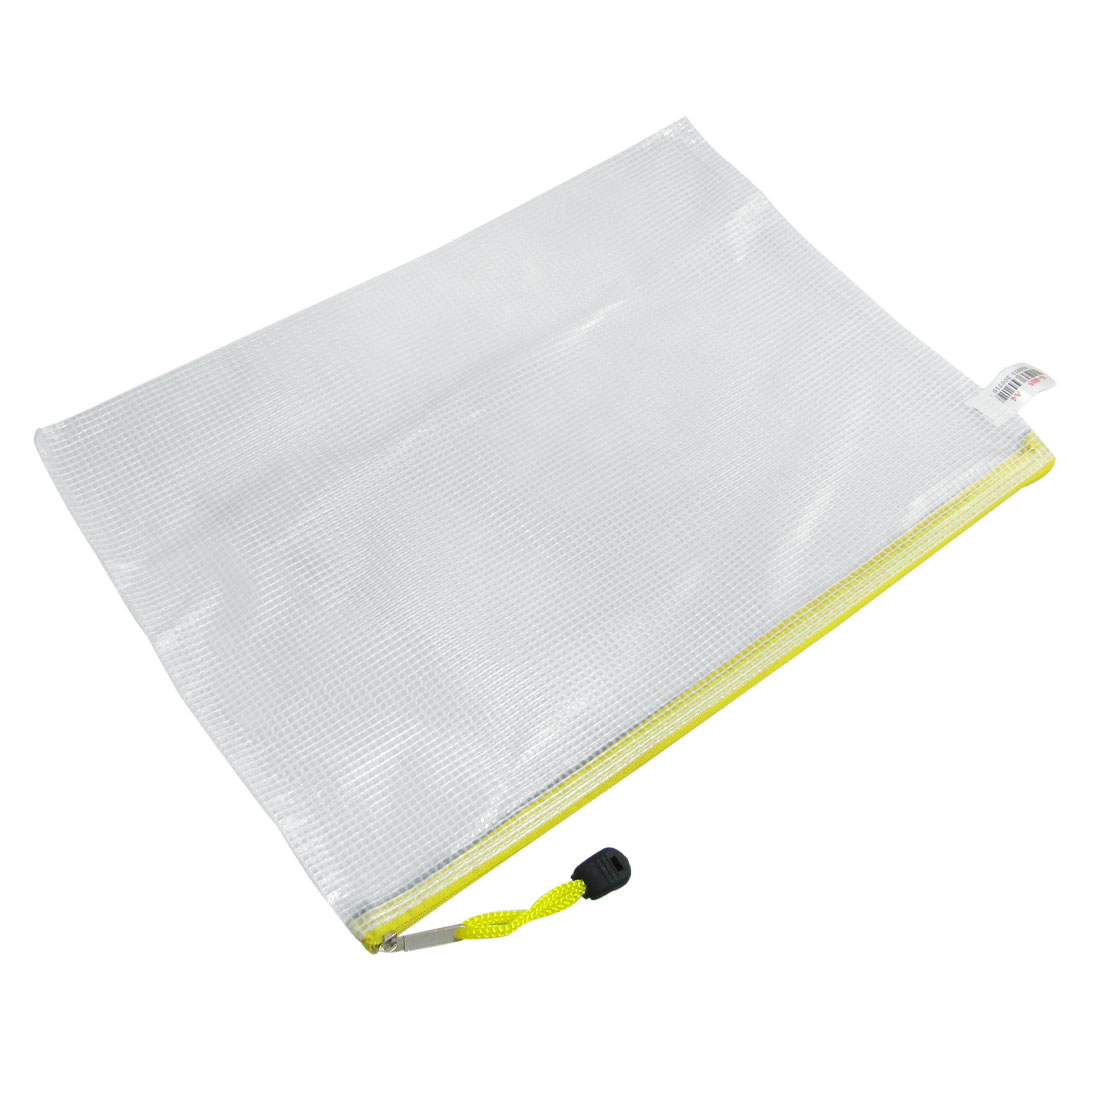 12 Pcs A4 Paper Gridding Zipper Closure Files Document Bags Yellow